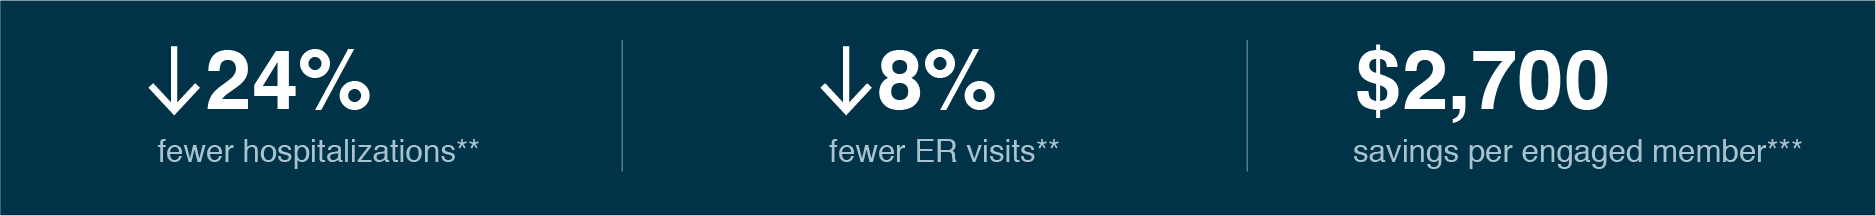 24% fewer hospitalizations; 8% fewer ER visits; $2,700 savings per engaged member*